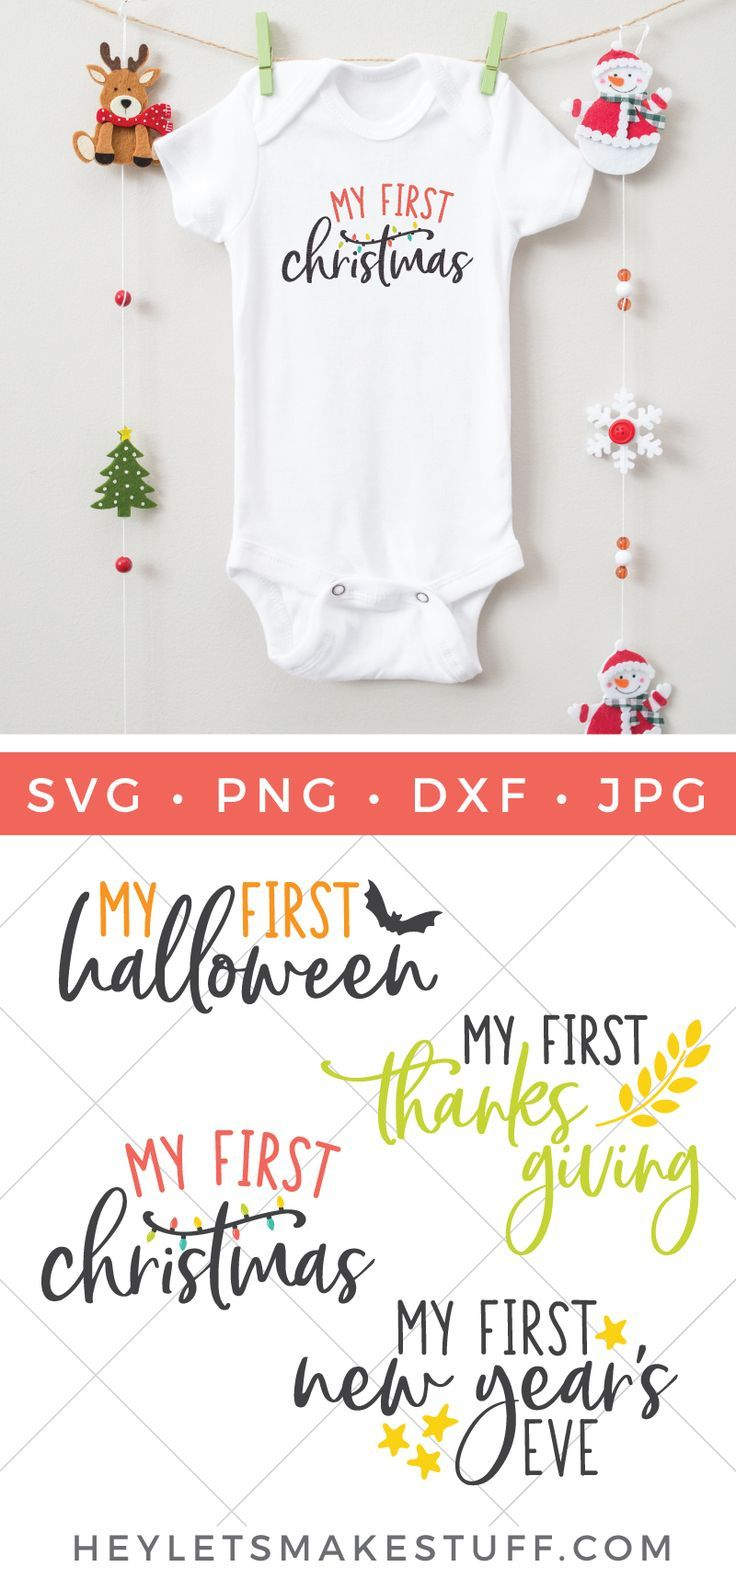 Your baby's first year is full of memories! Use this